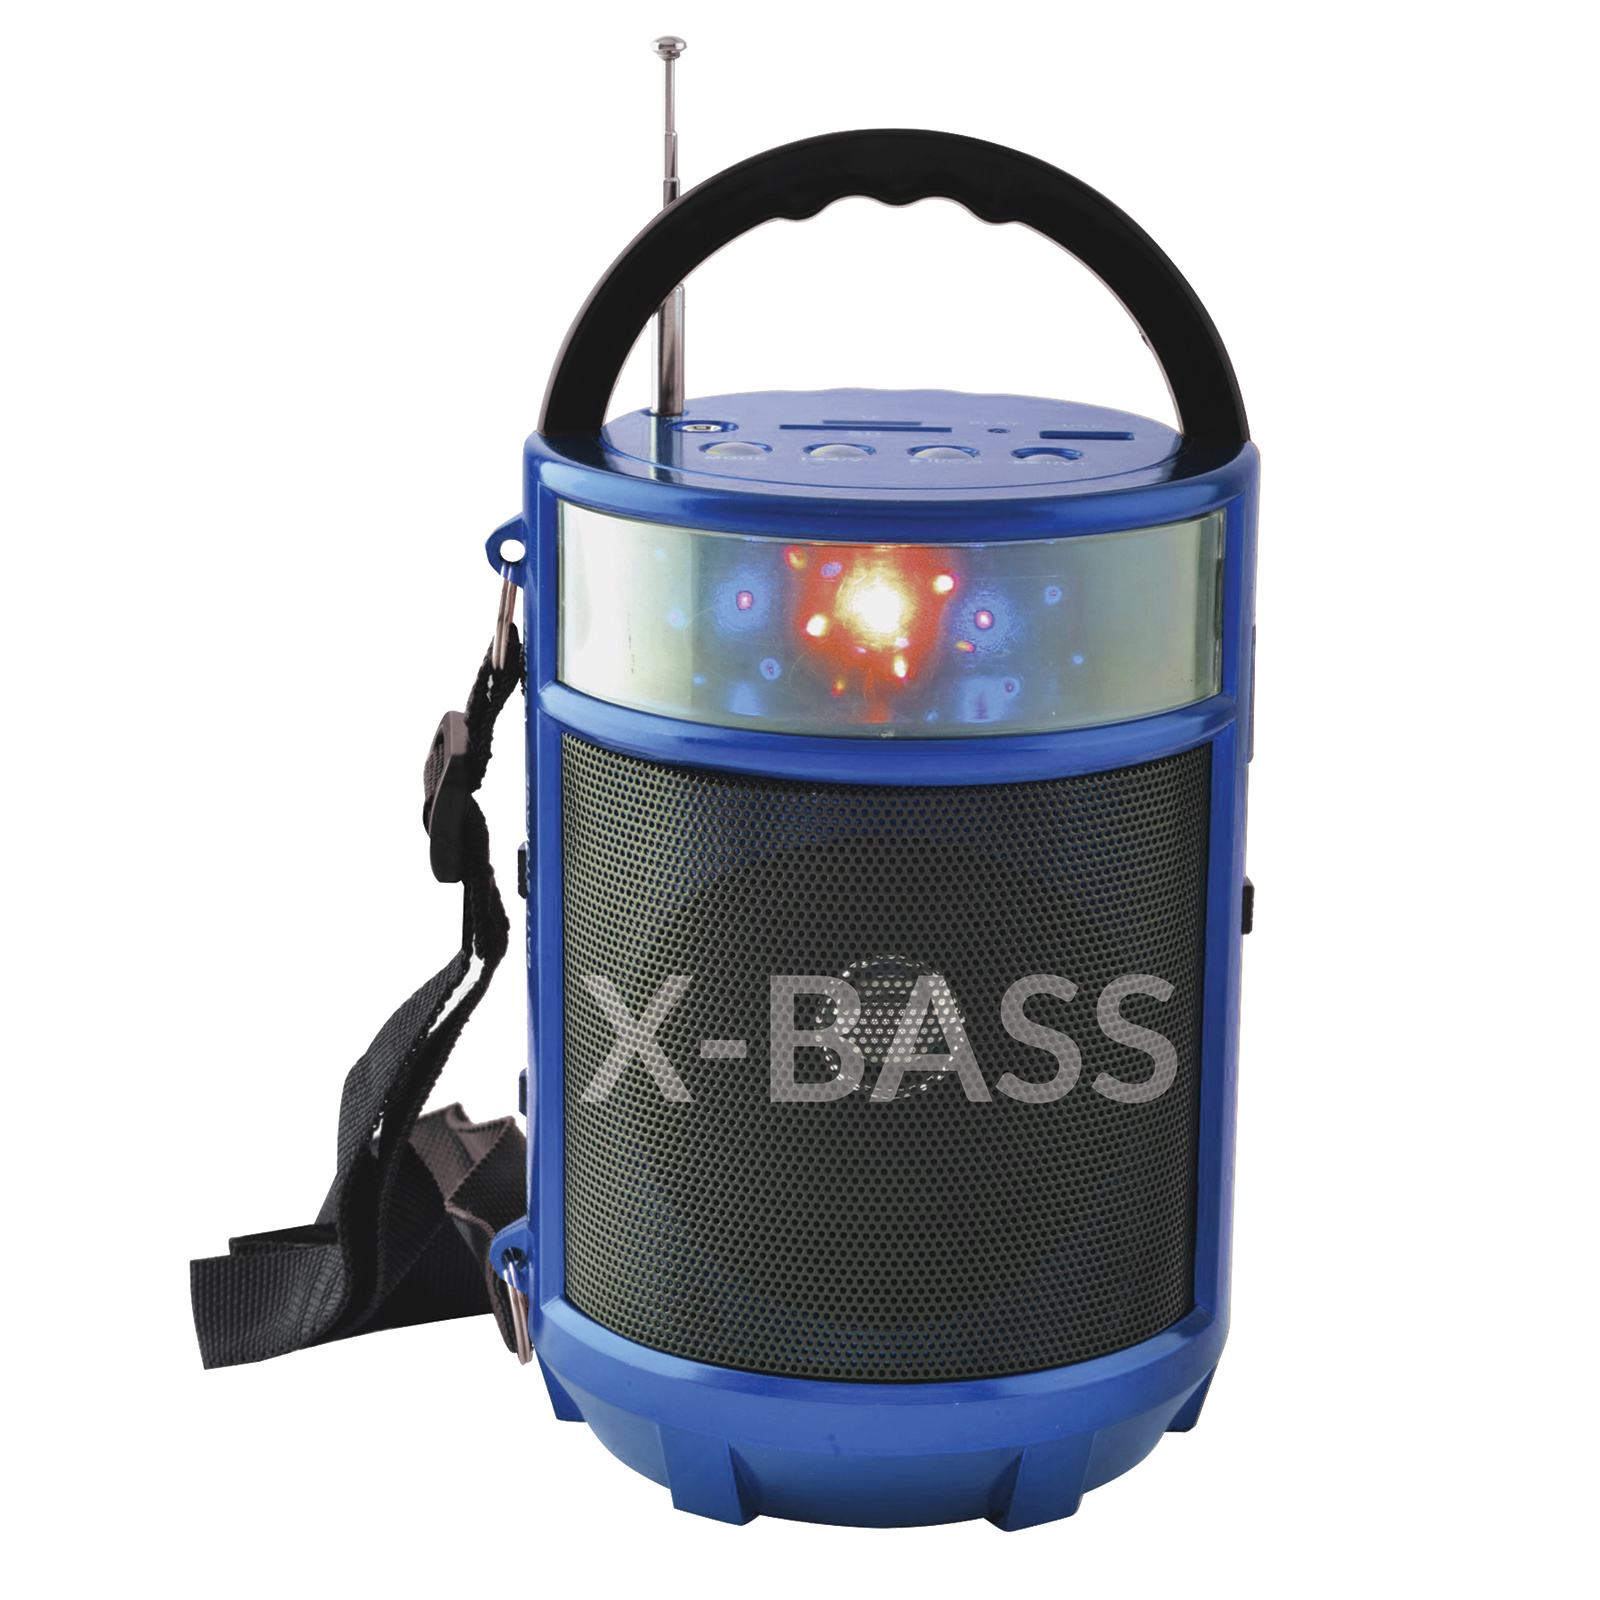 "X-Bass Portable Bluetooth FM Radio with LED Light Lantern - 4"" x 4"" x 6"""